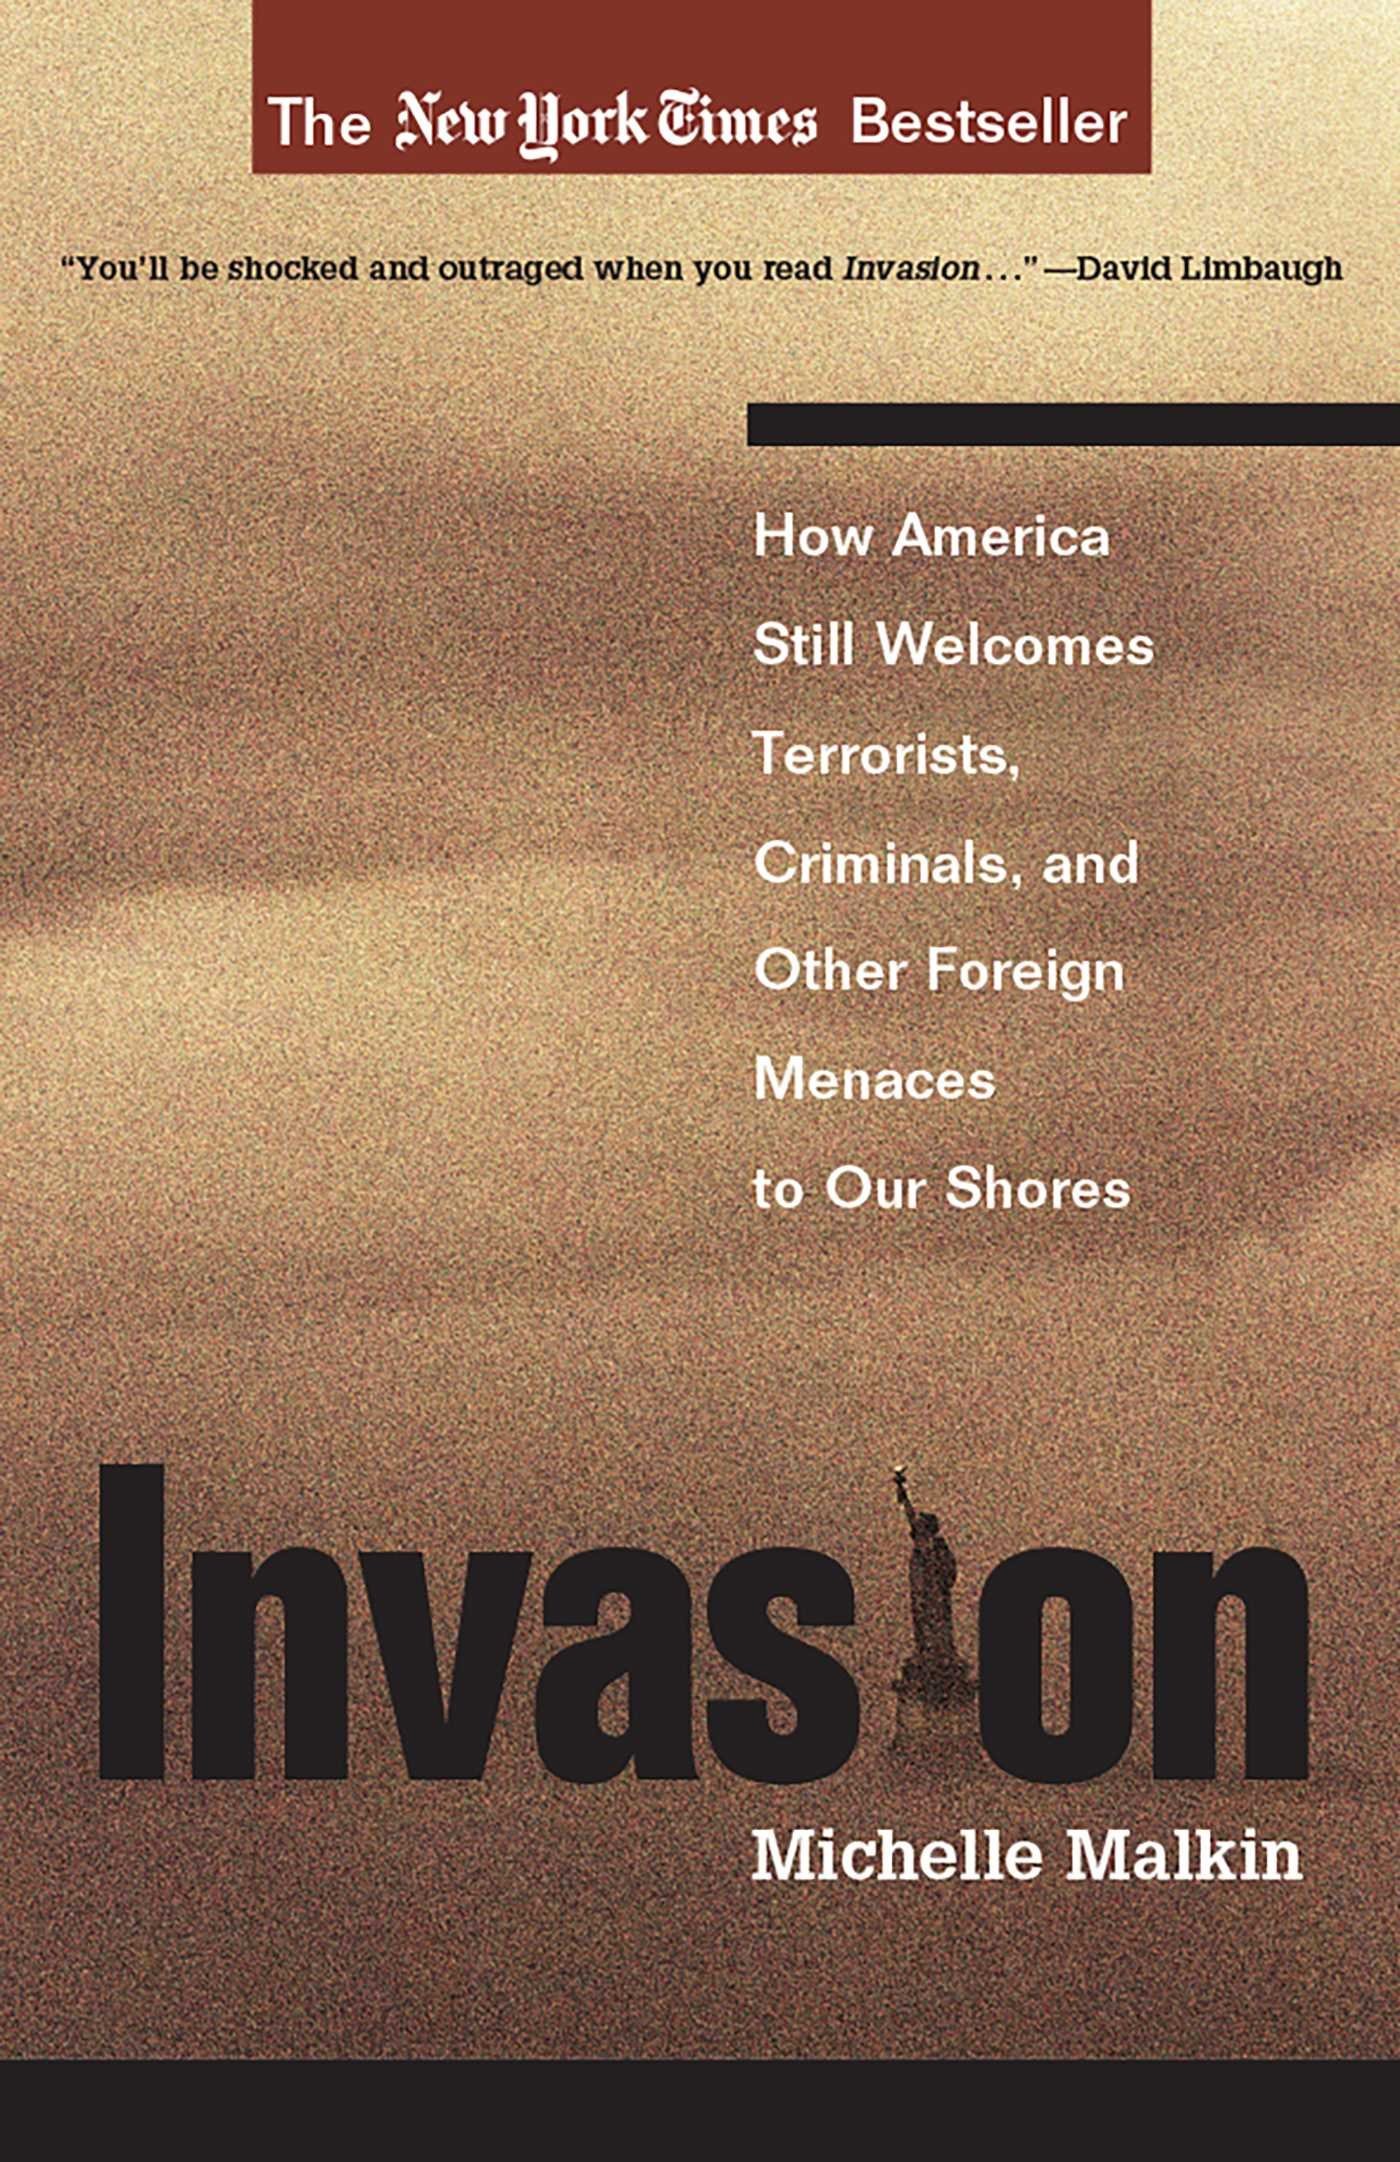 Download Invasion: How America Still Welcomes Terrorists Criminals & Other Foreign Menaces to Our Shores ebook